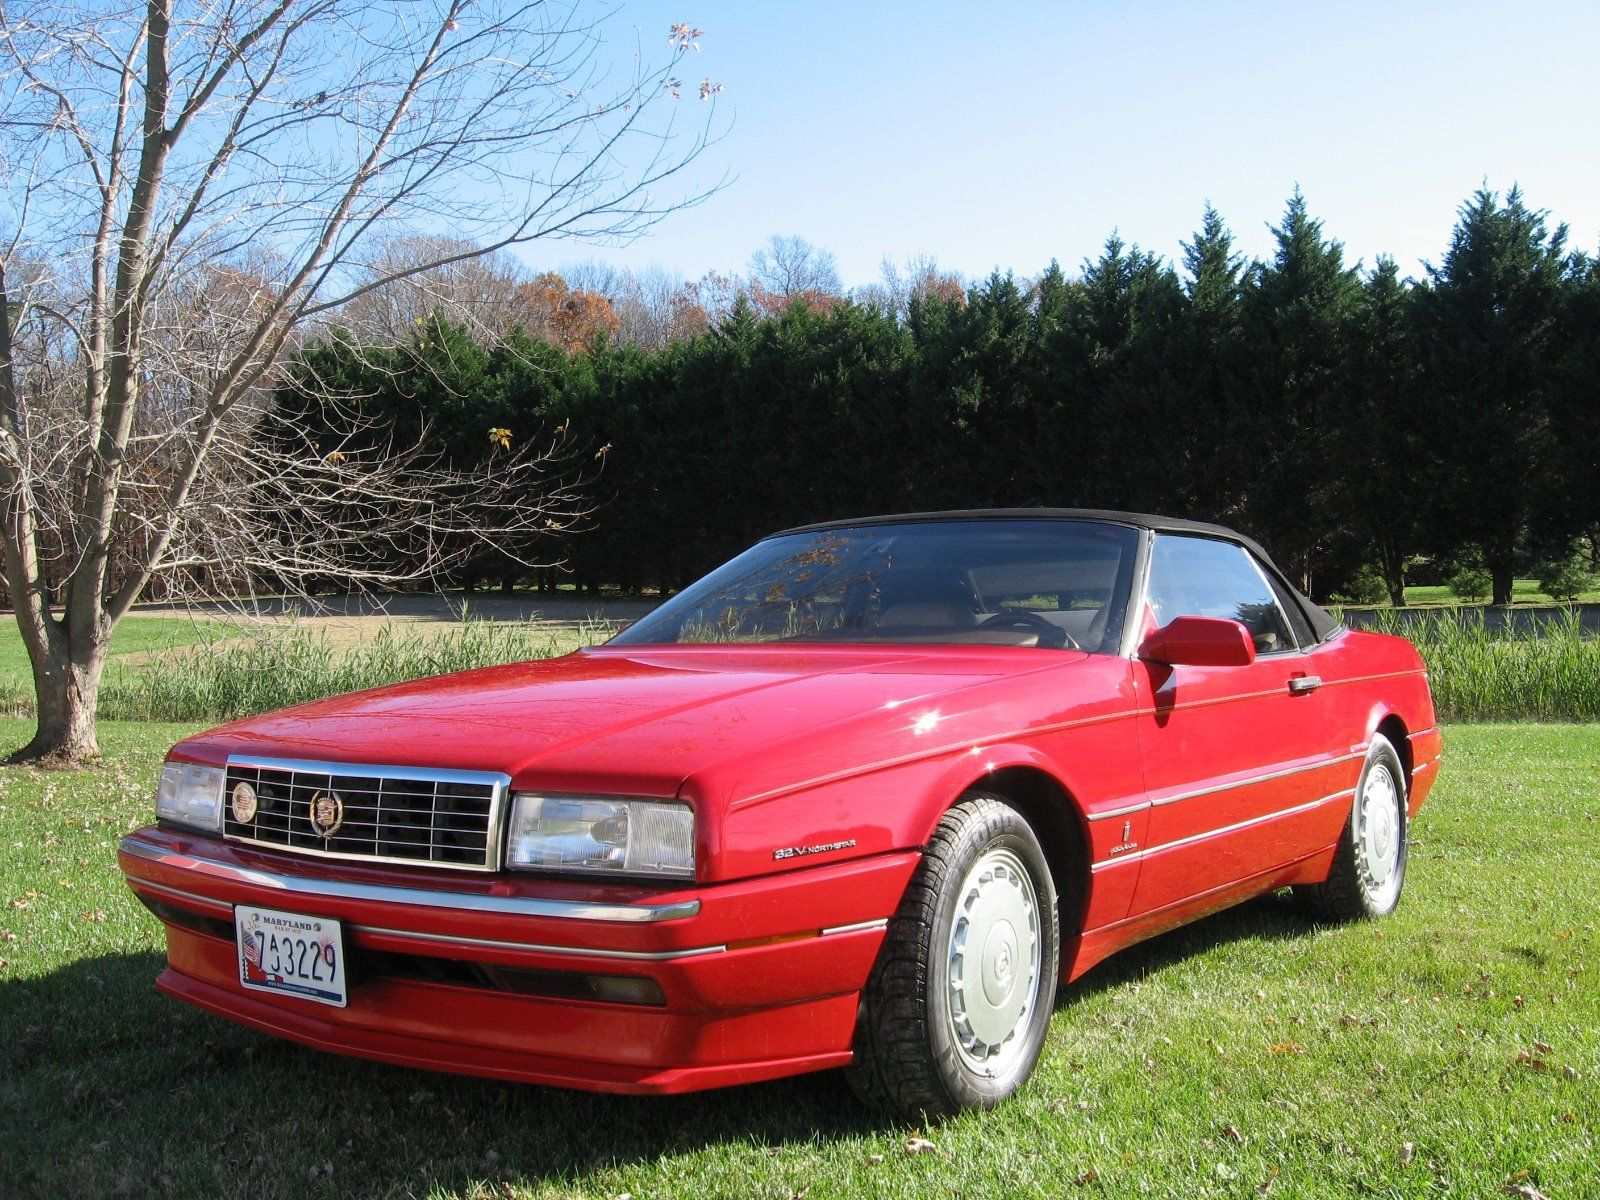 Cadillac Of Easton >> 1993 Cadillac Allante for sale